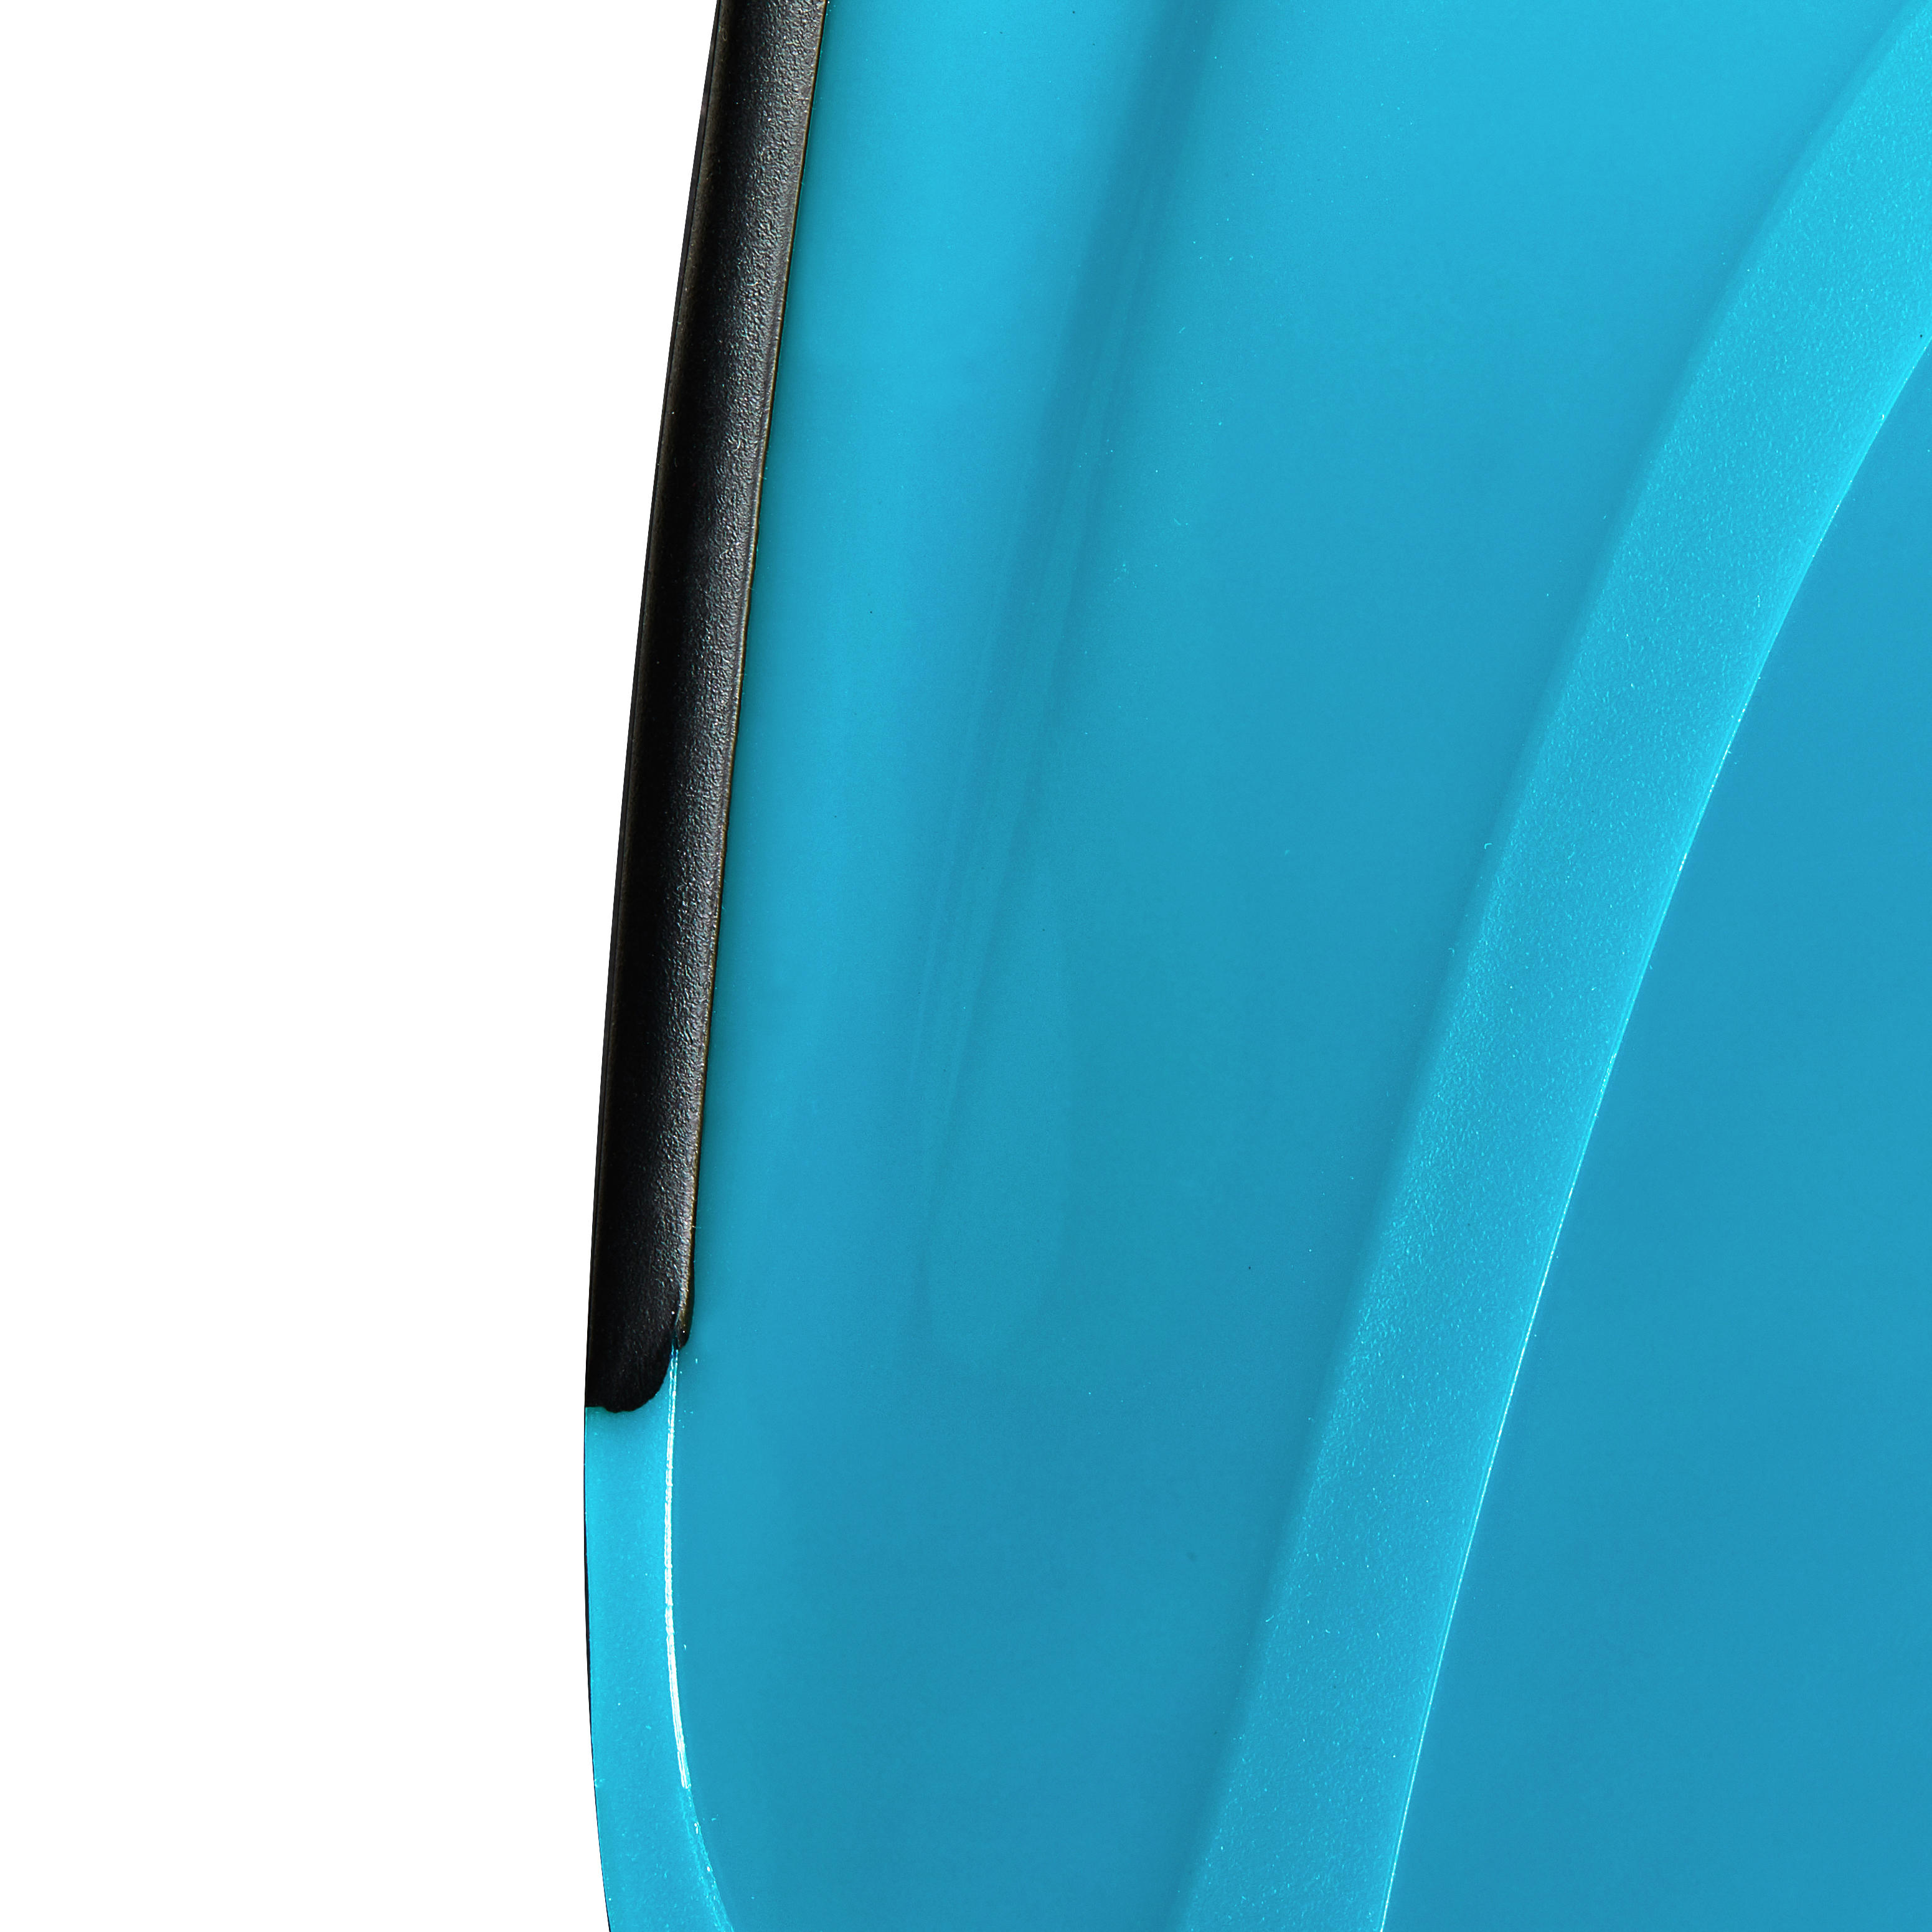 SNK 520 Adult Snorkeling Fins turquoise black